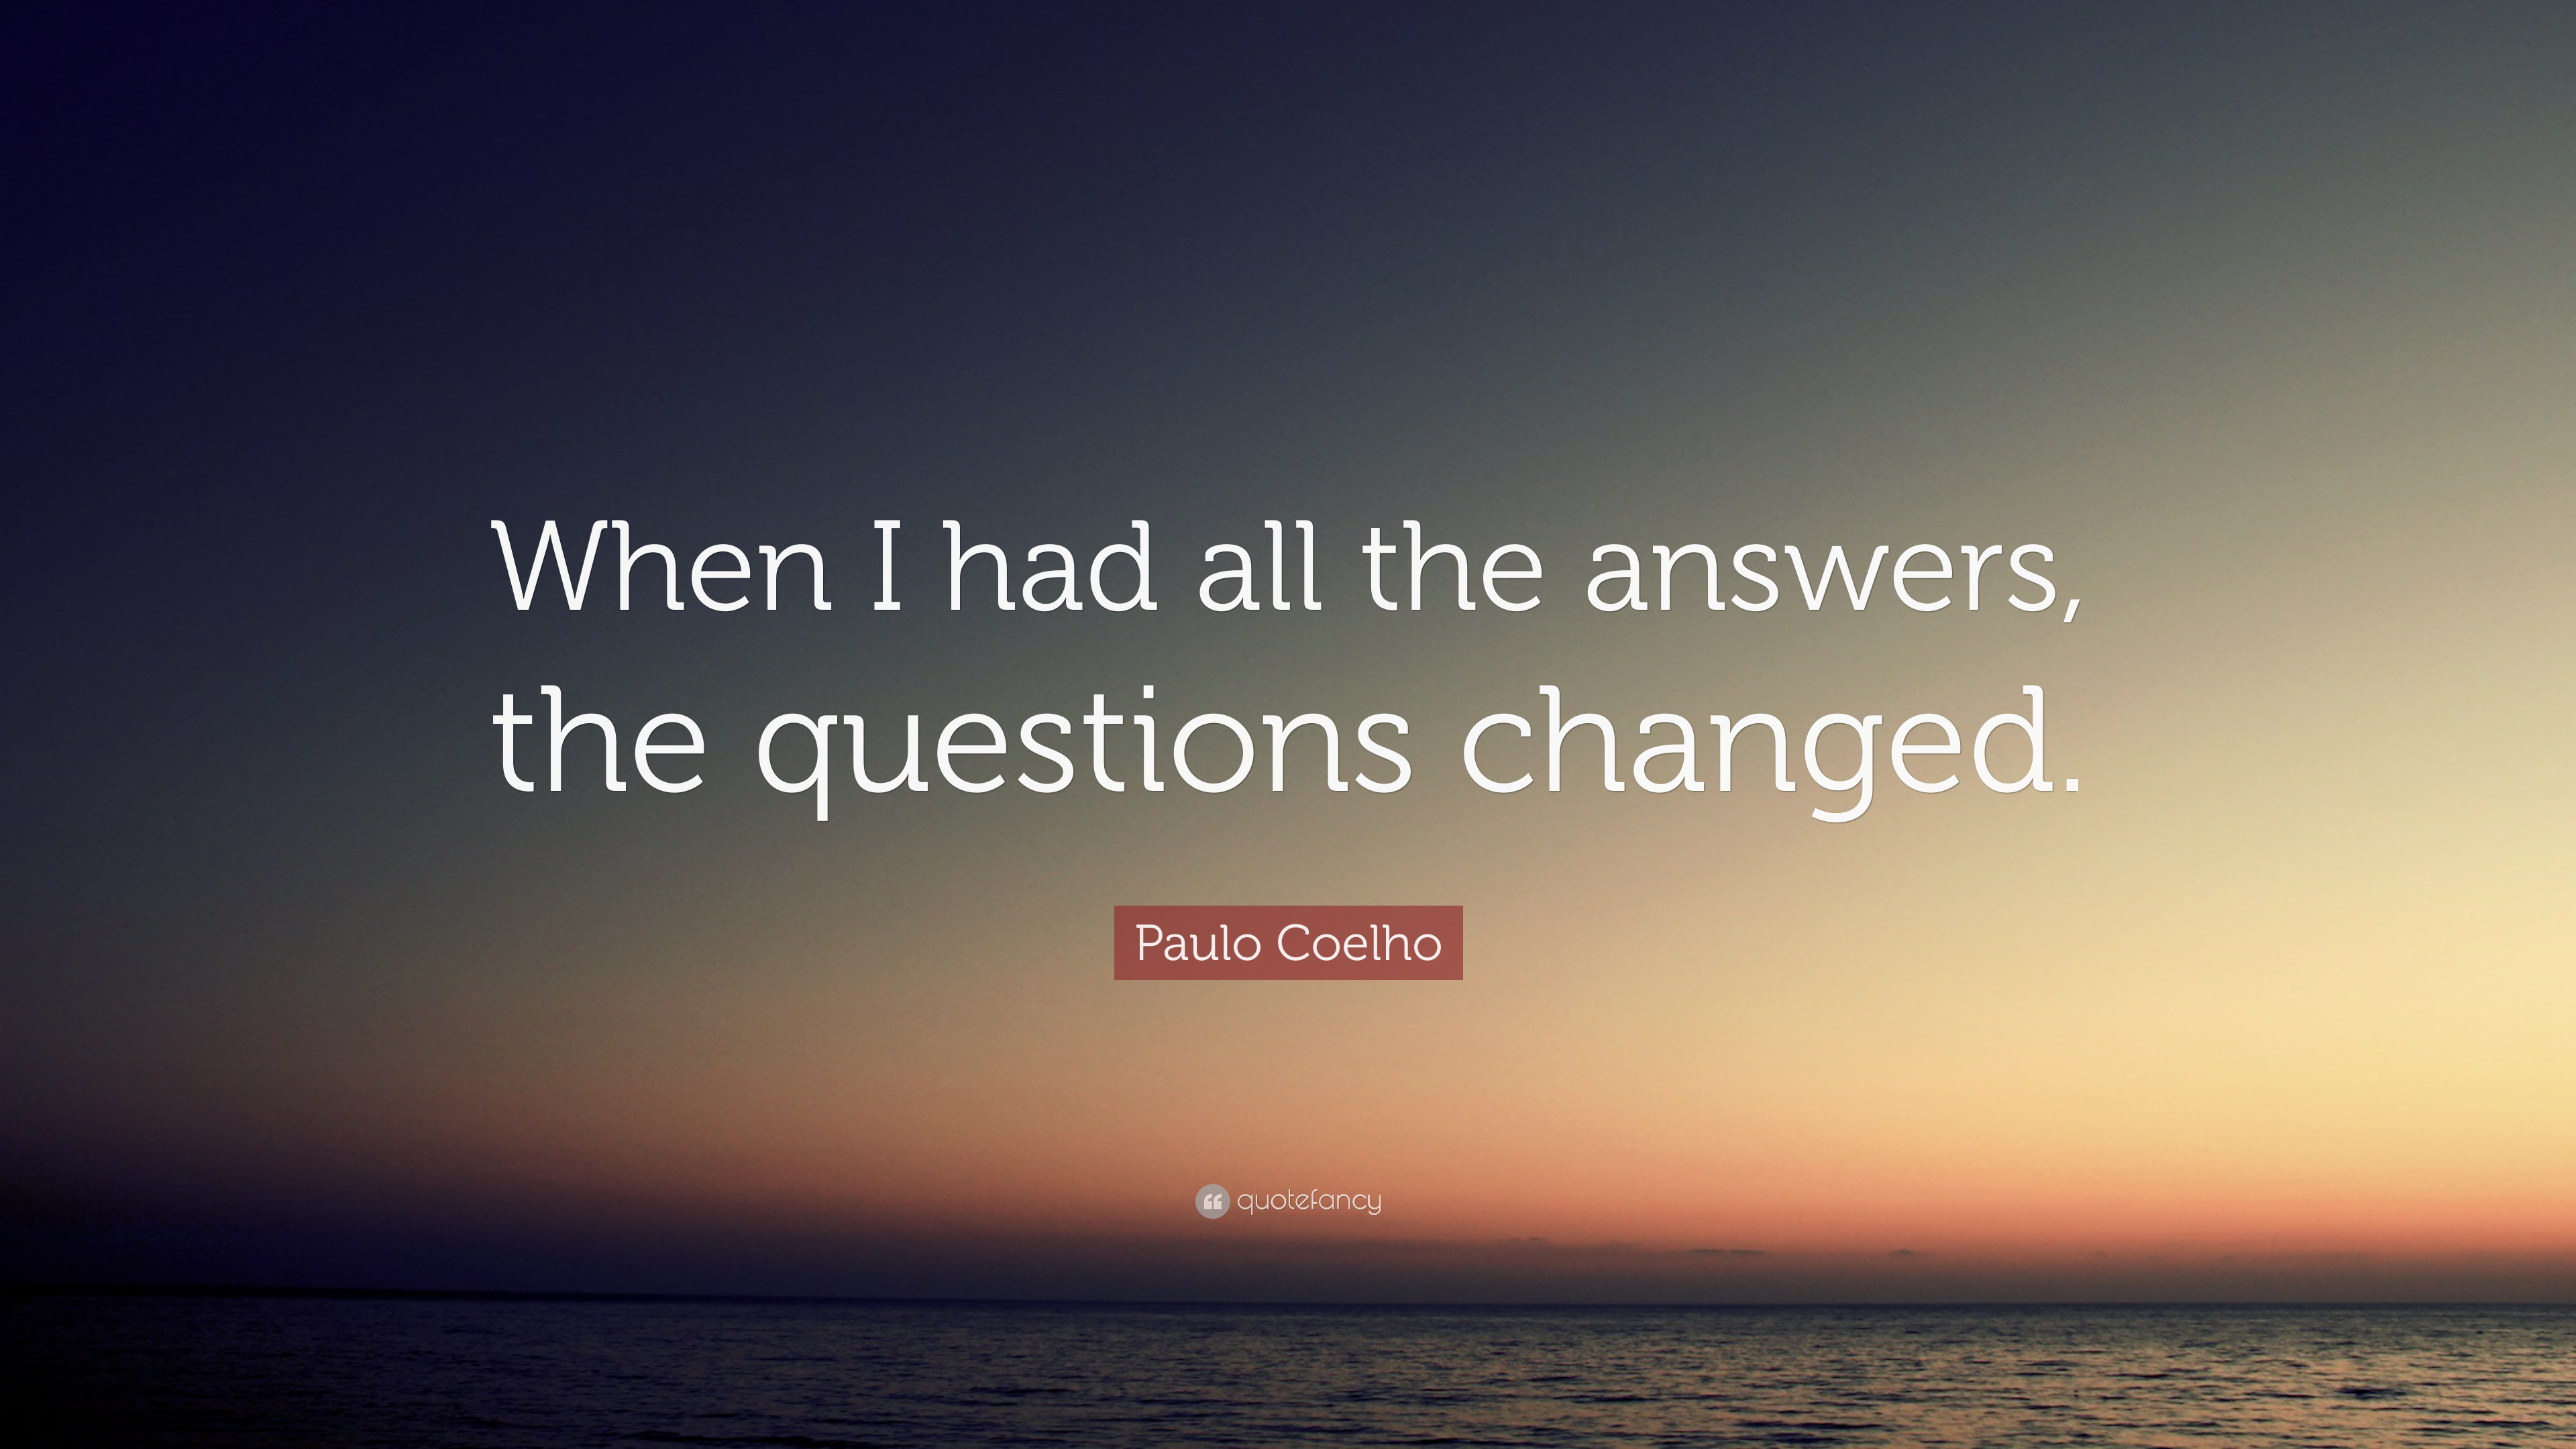 Paulo Coelho Quote When I Had All The Answers The Questions